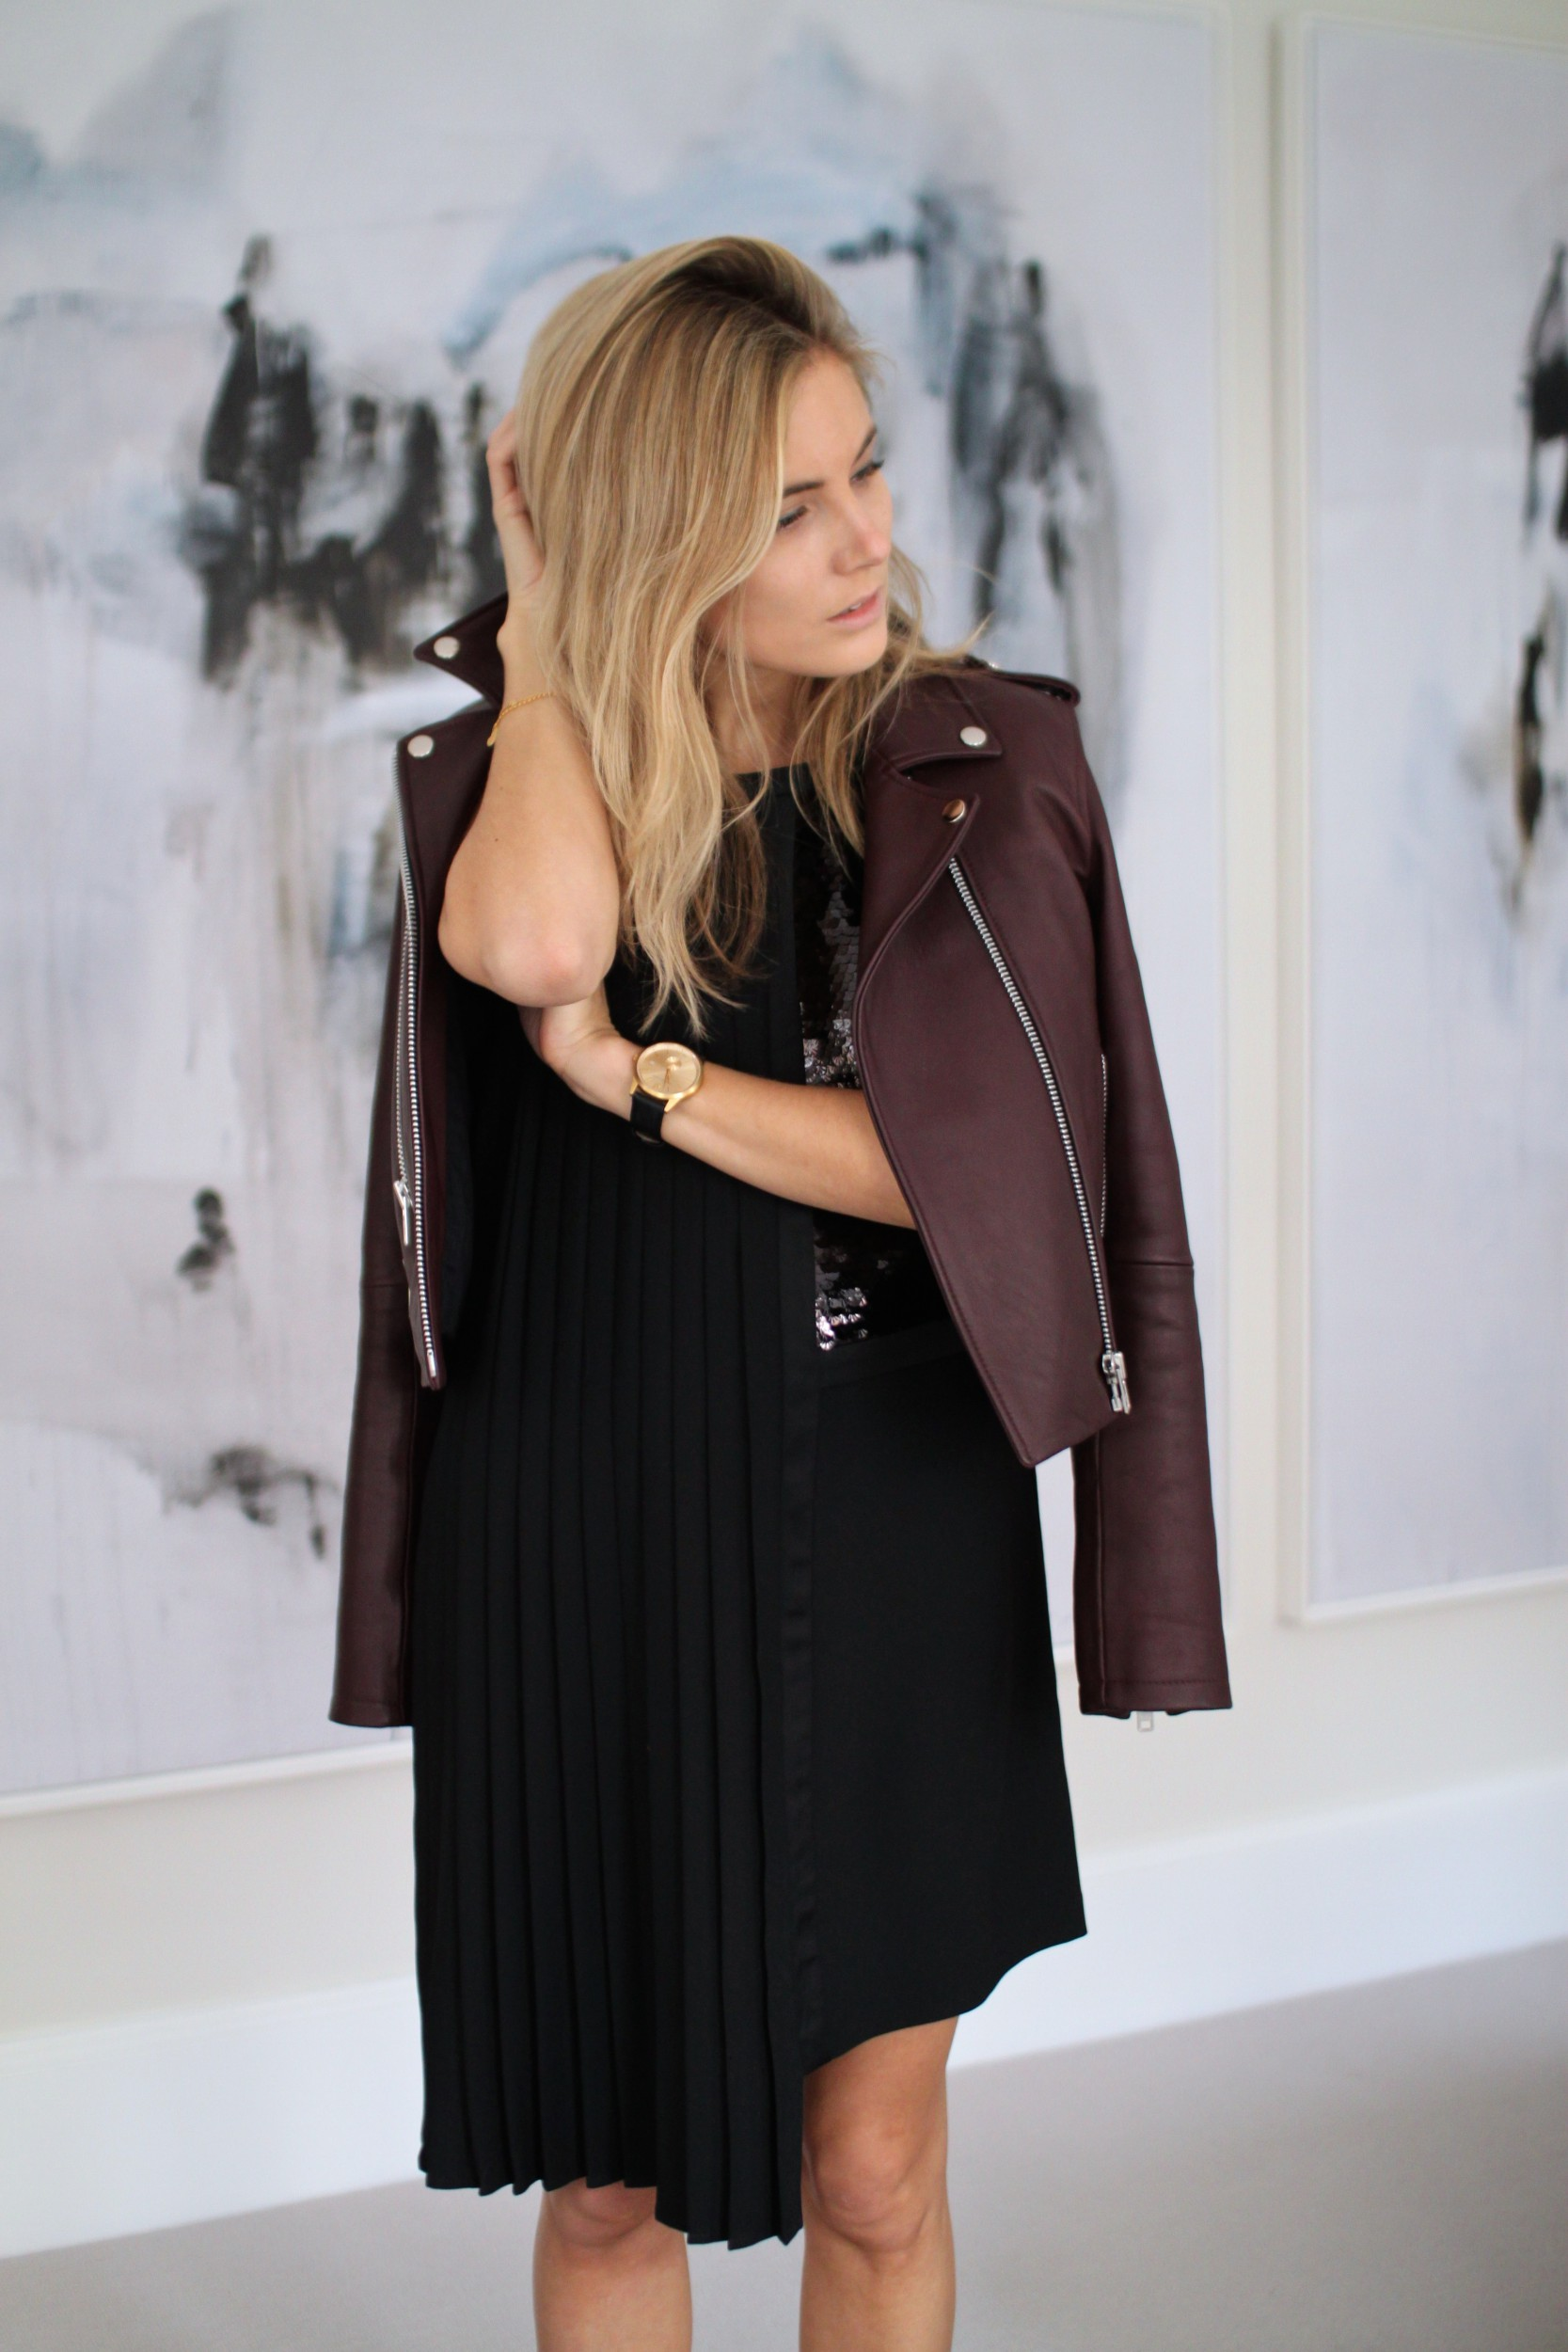 Black Dress Leather Jacket